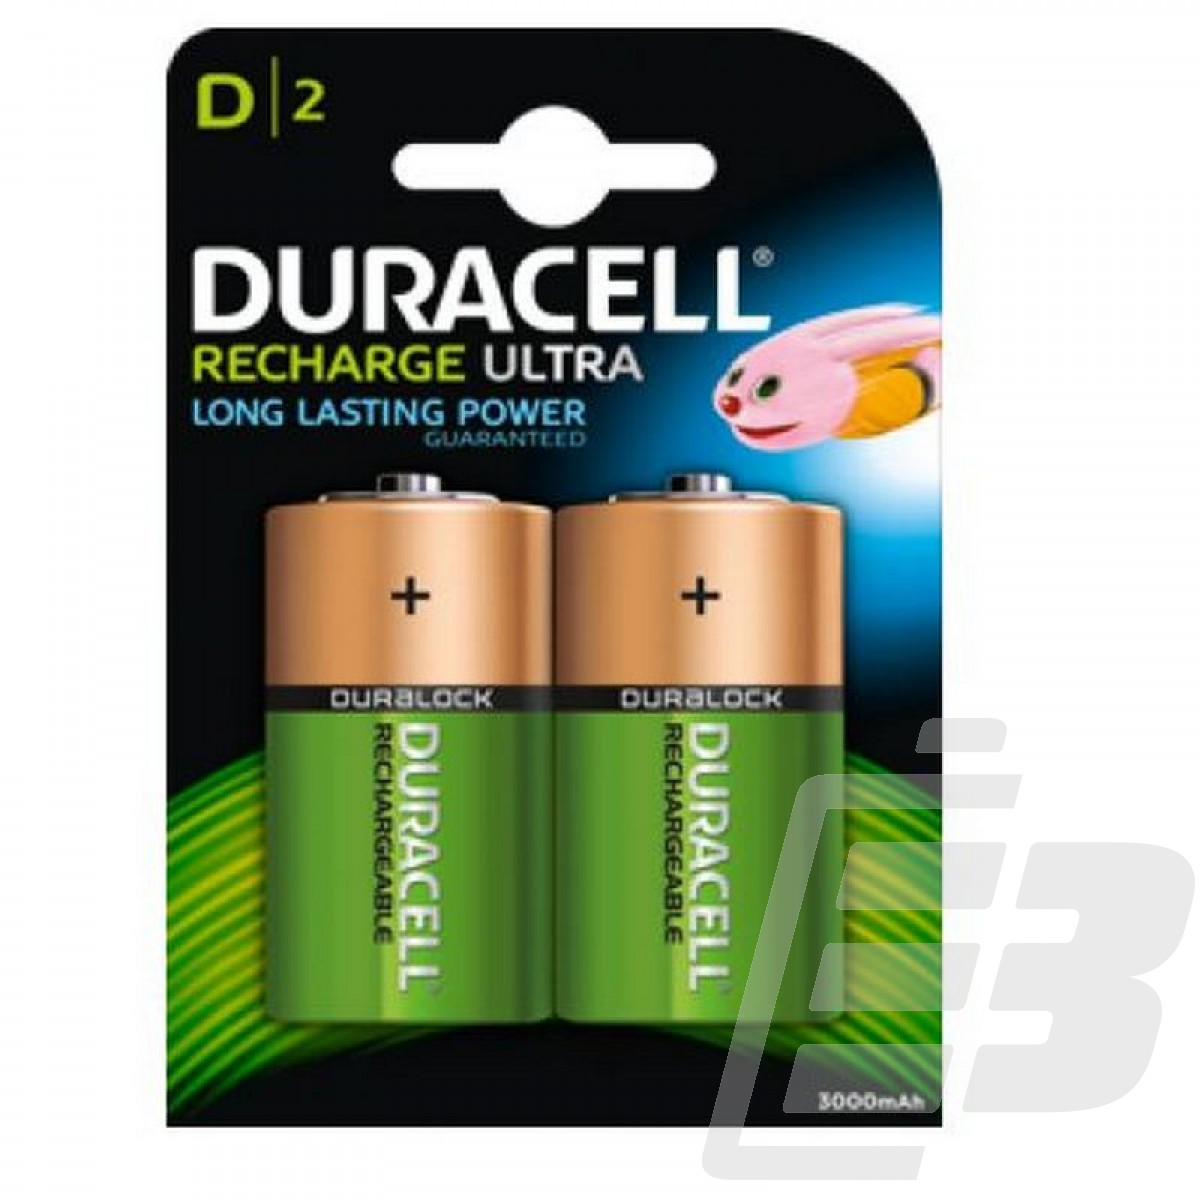 Duracell HR20 D Rechargeable Battery 3000mah 1